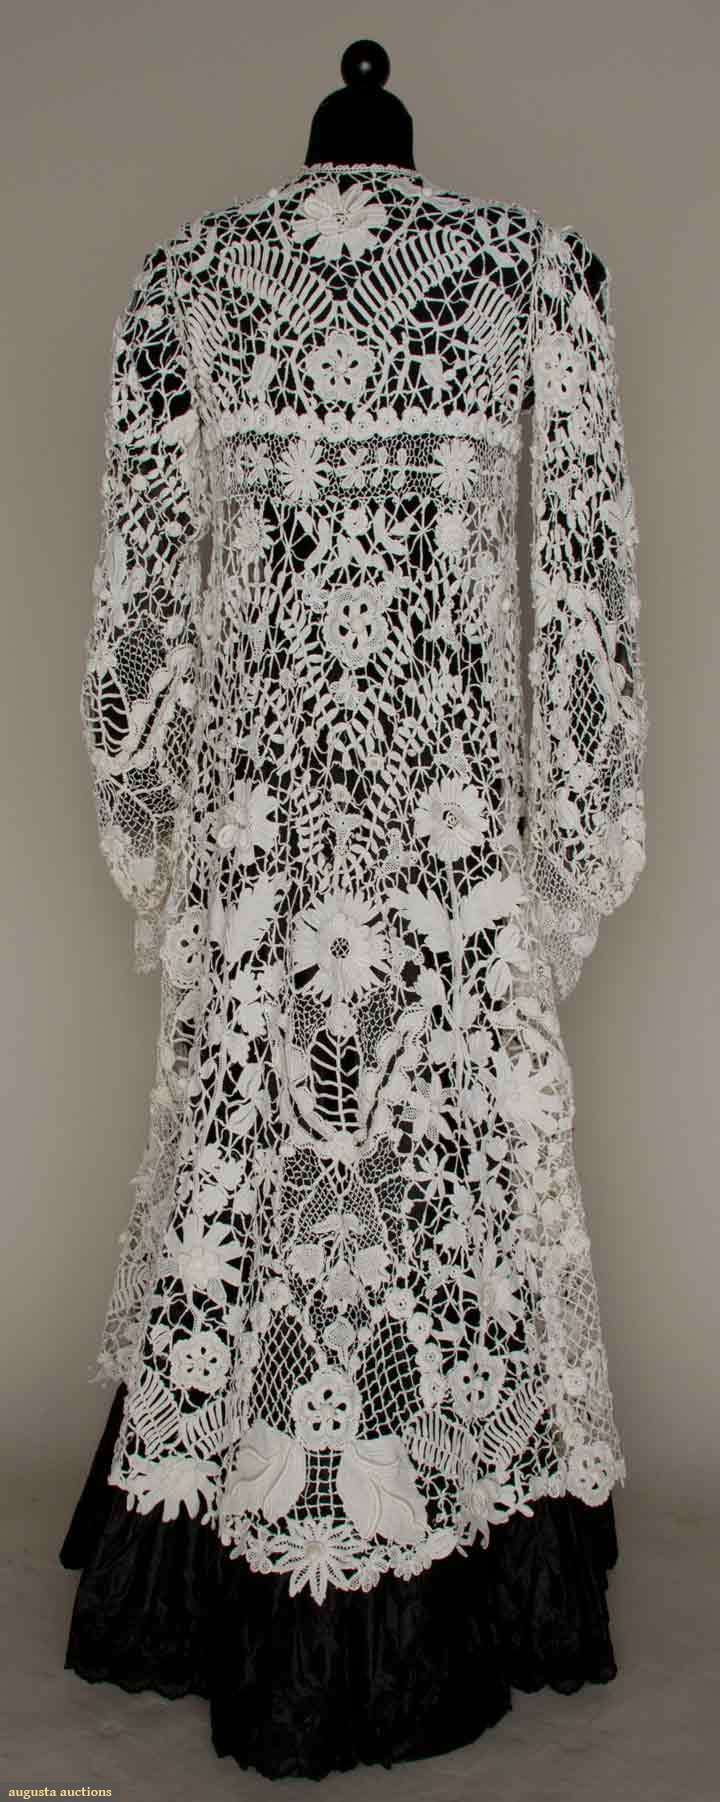 """IRISH CROCHET EDWARDIAN COAT, c.1905. White cotton, 3 dimensional leaf & blossom lace, empire top, A-line body, shaped long sleeves, L 49"""", excellent."""